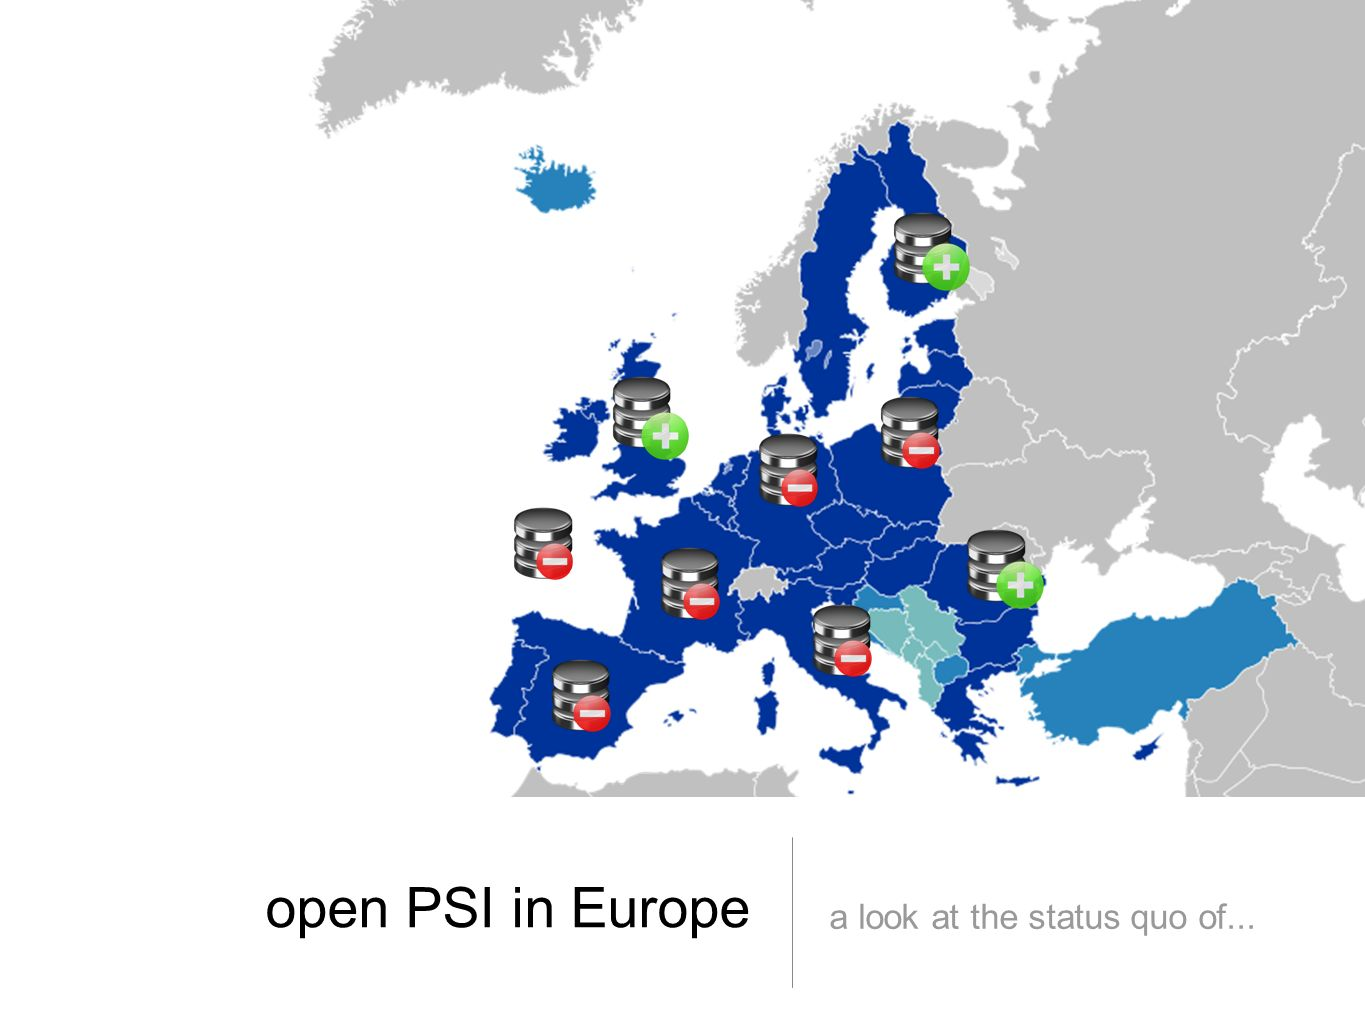 open PSI in Europe a look at the status quo of...